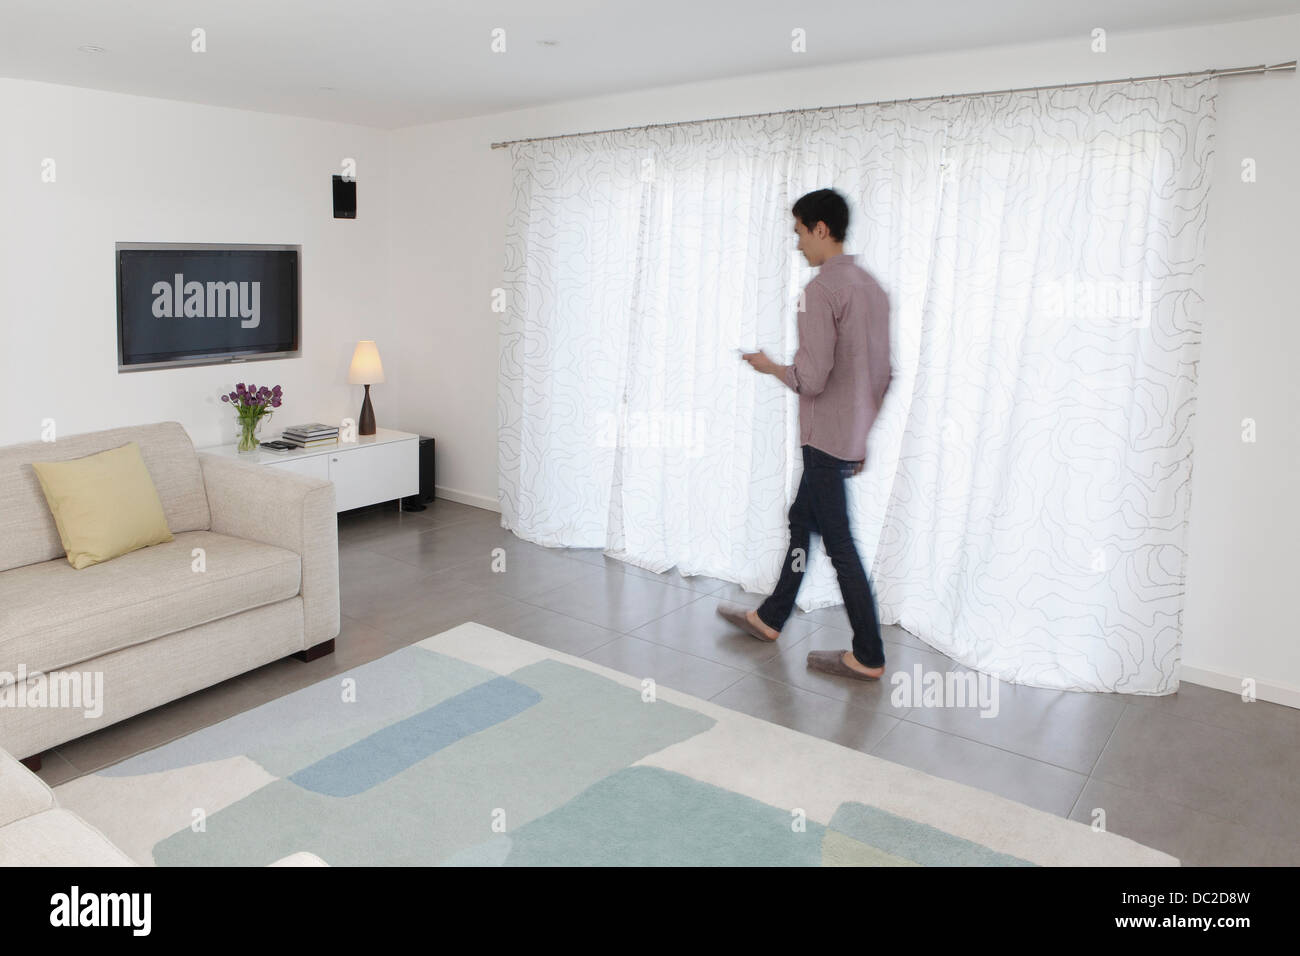 Man with mobile phone walking past curtains - Stock Image